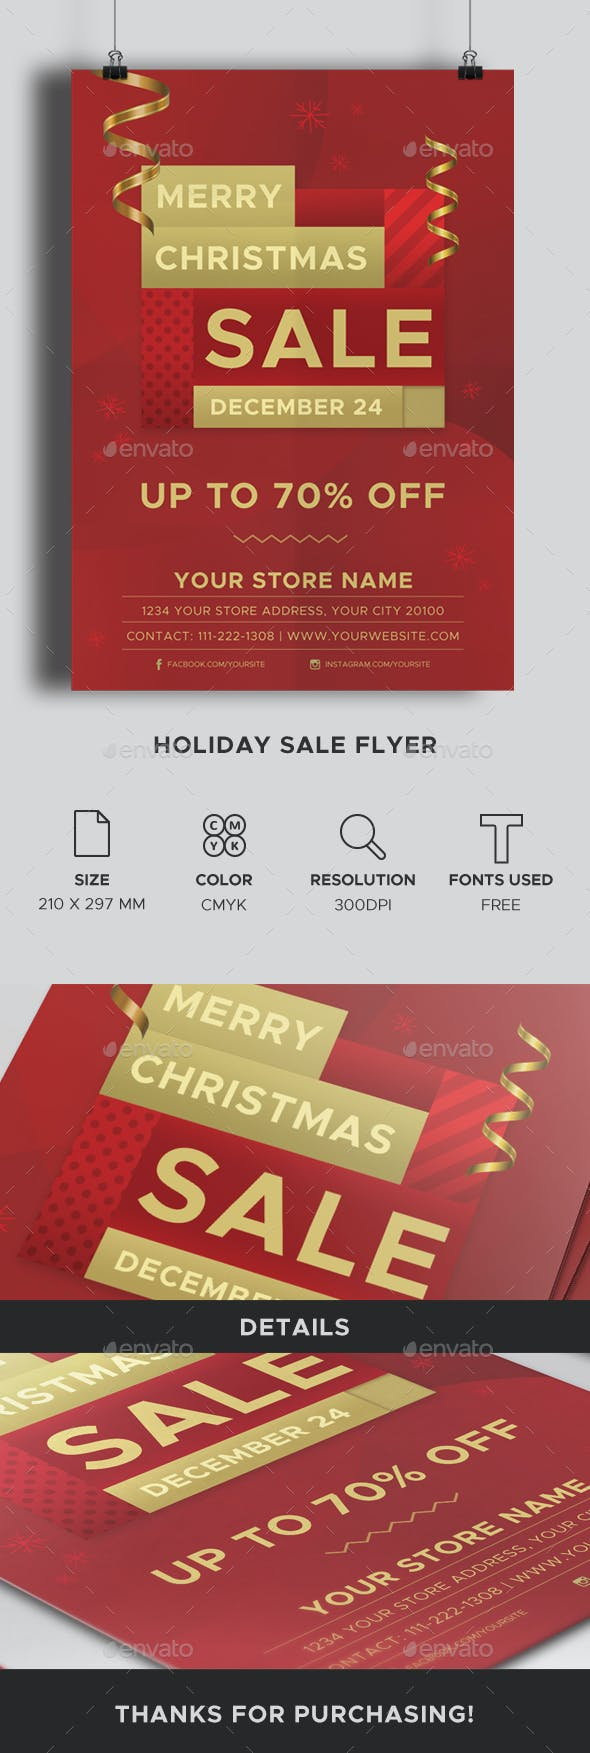 holiday sale flyer by elitevision graphicriver